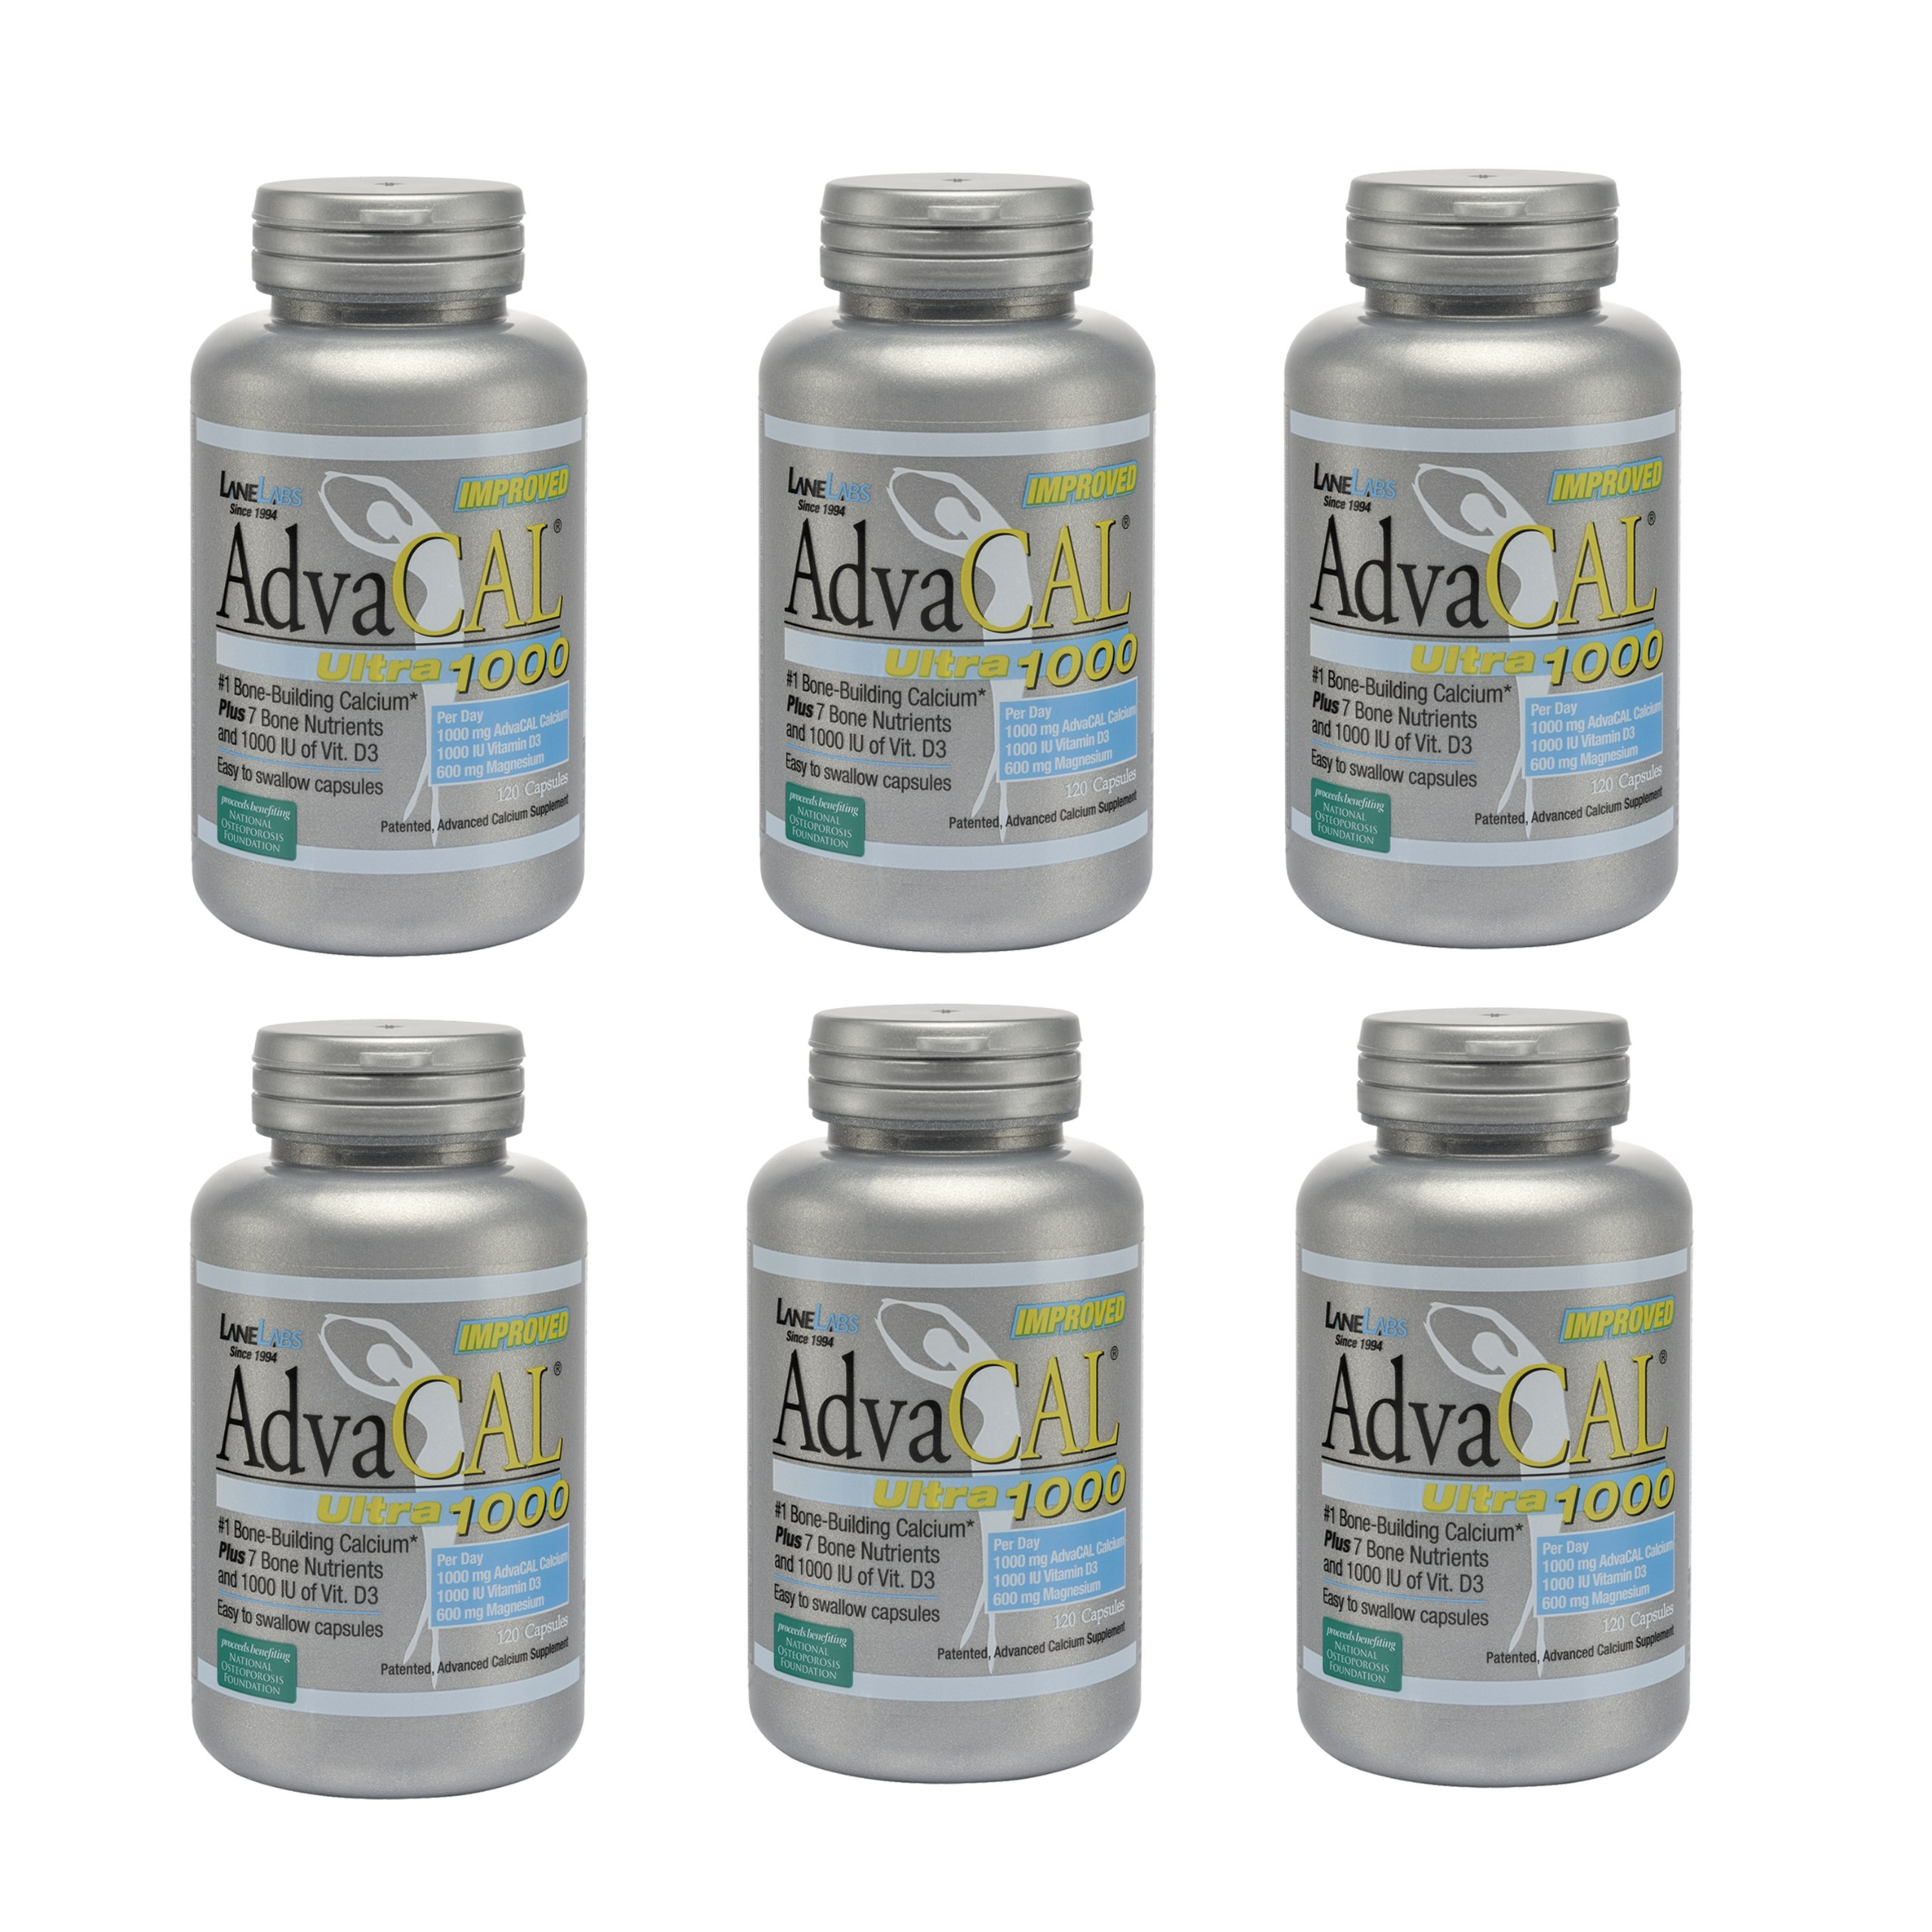 Lane Labs Advacal Ultra 1000 Calcium - 120 Capsules - Pack of 6 Bottles